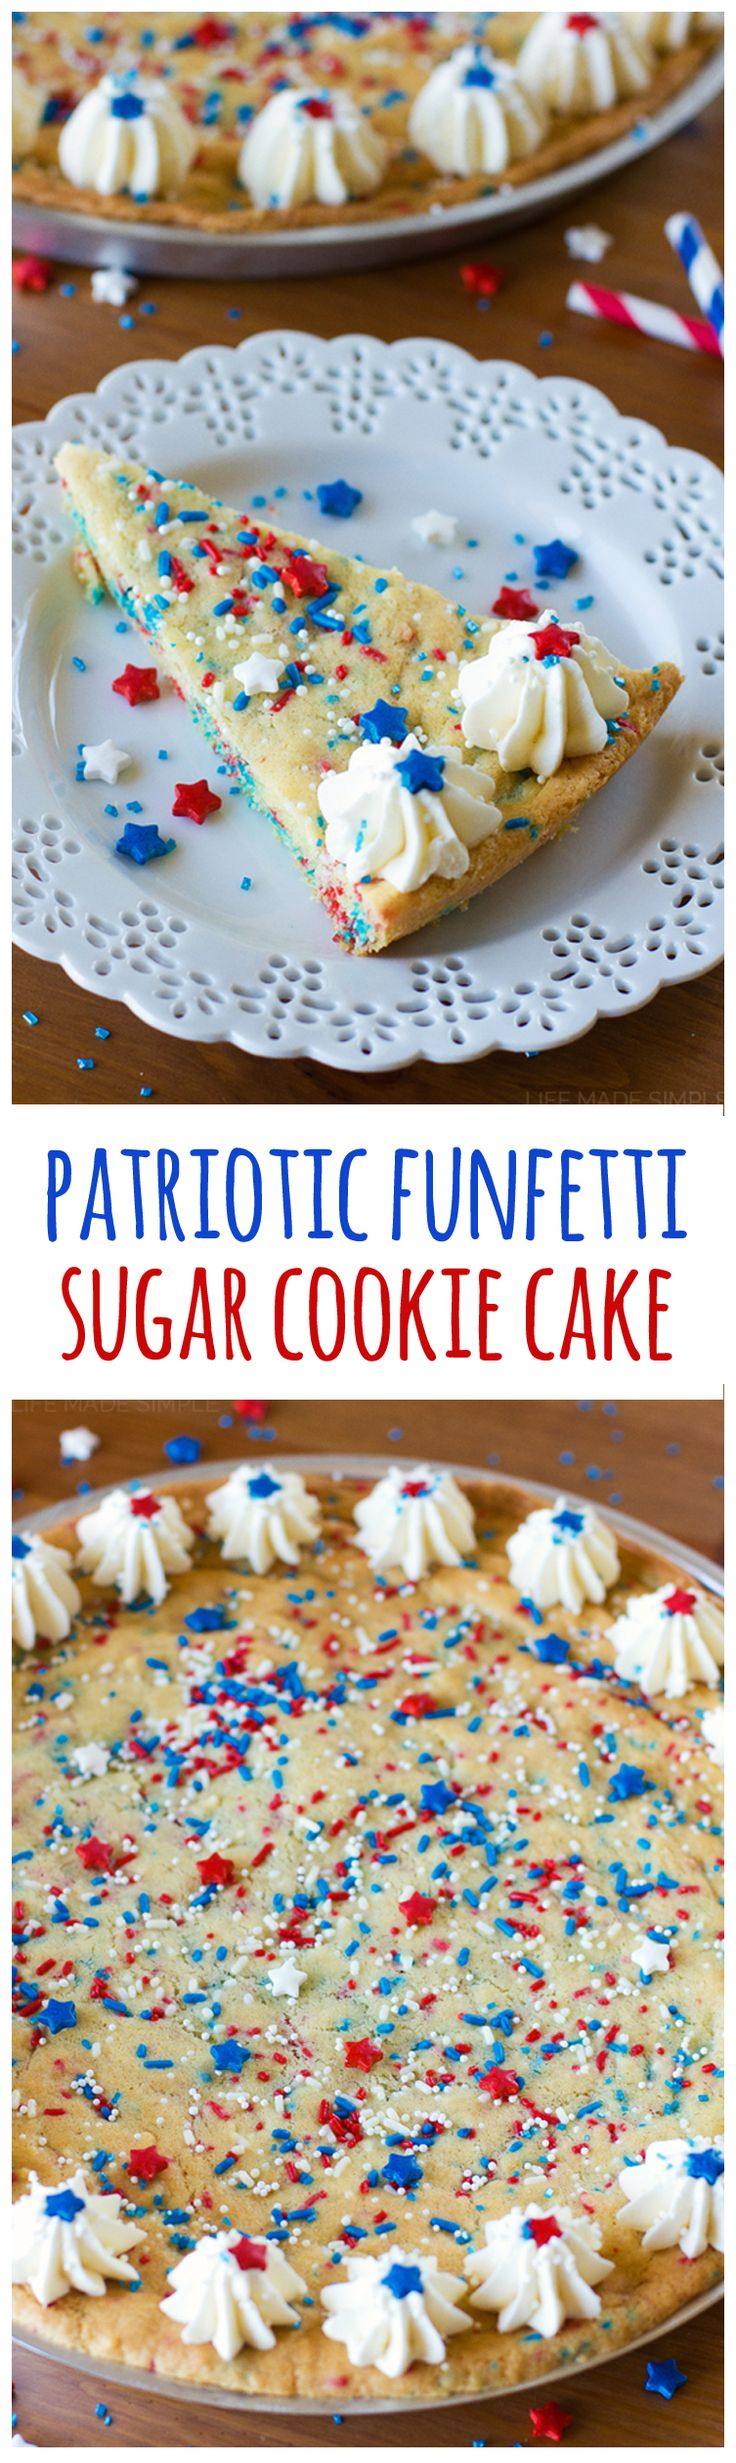 One giant sugar cookie made into a fun and festive cake. Perfect for the 4th of July!